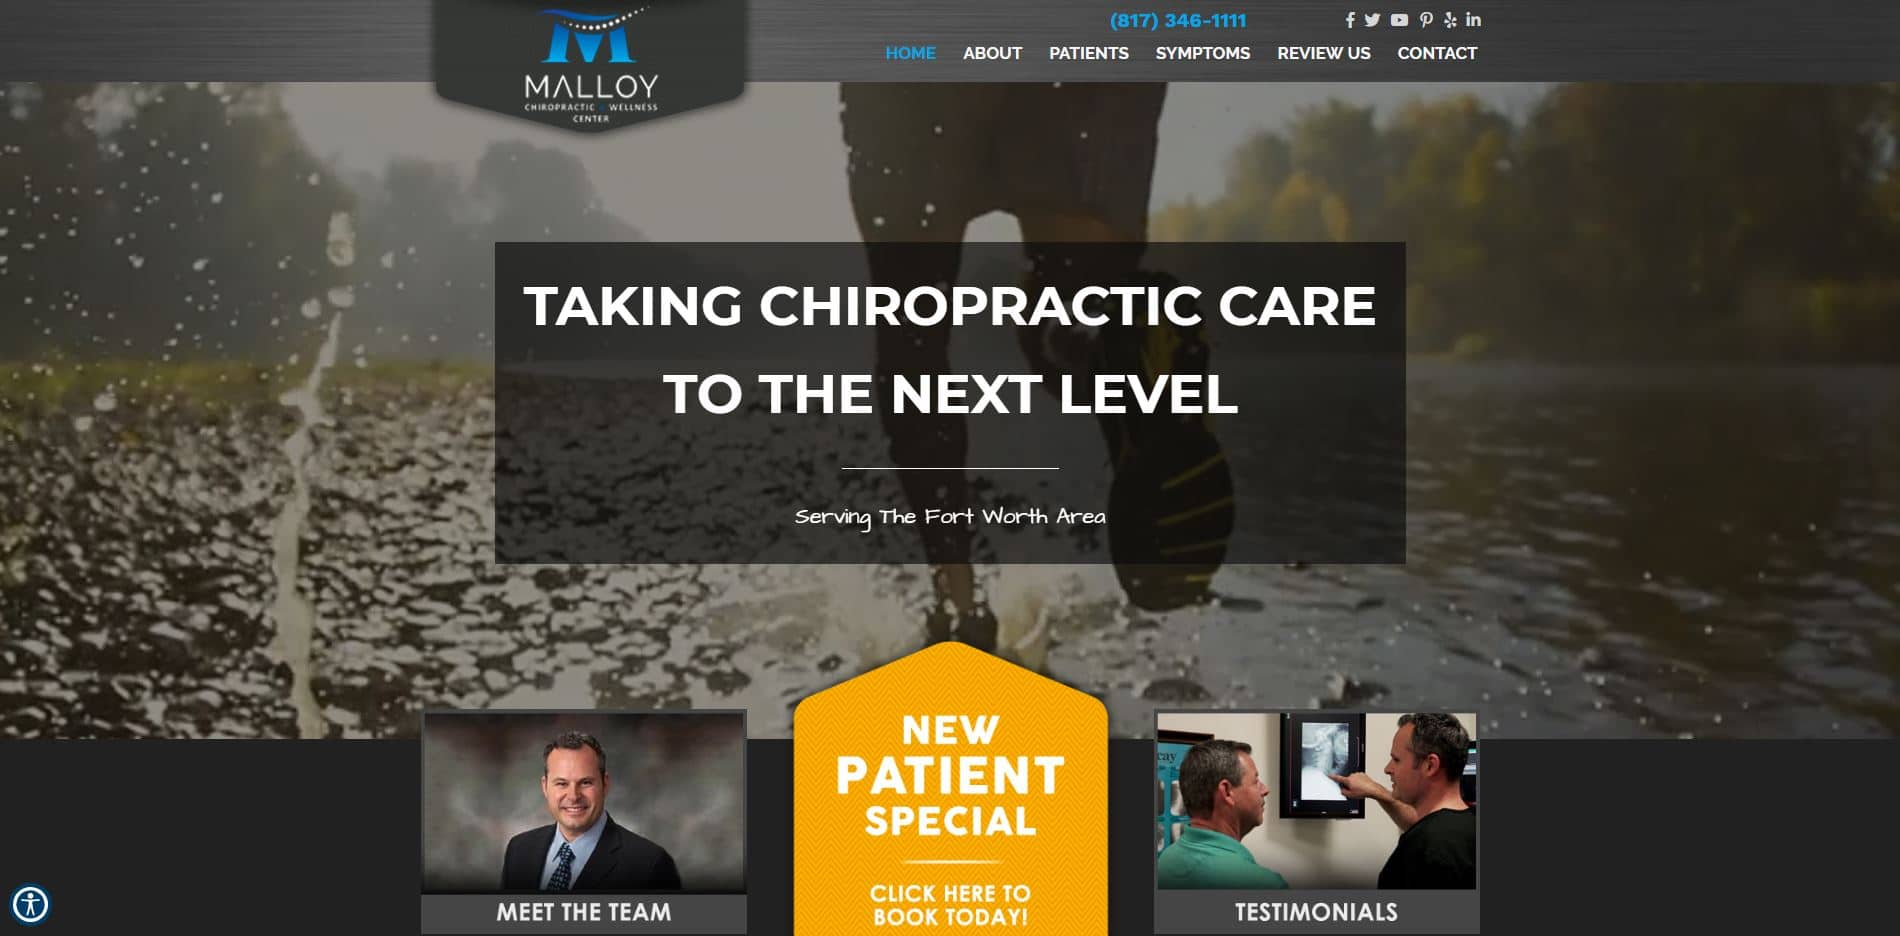 Chiropractor in Fort Worth